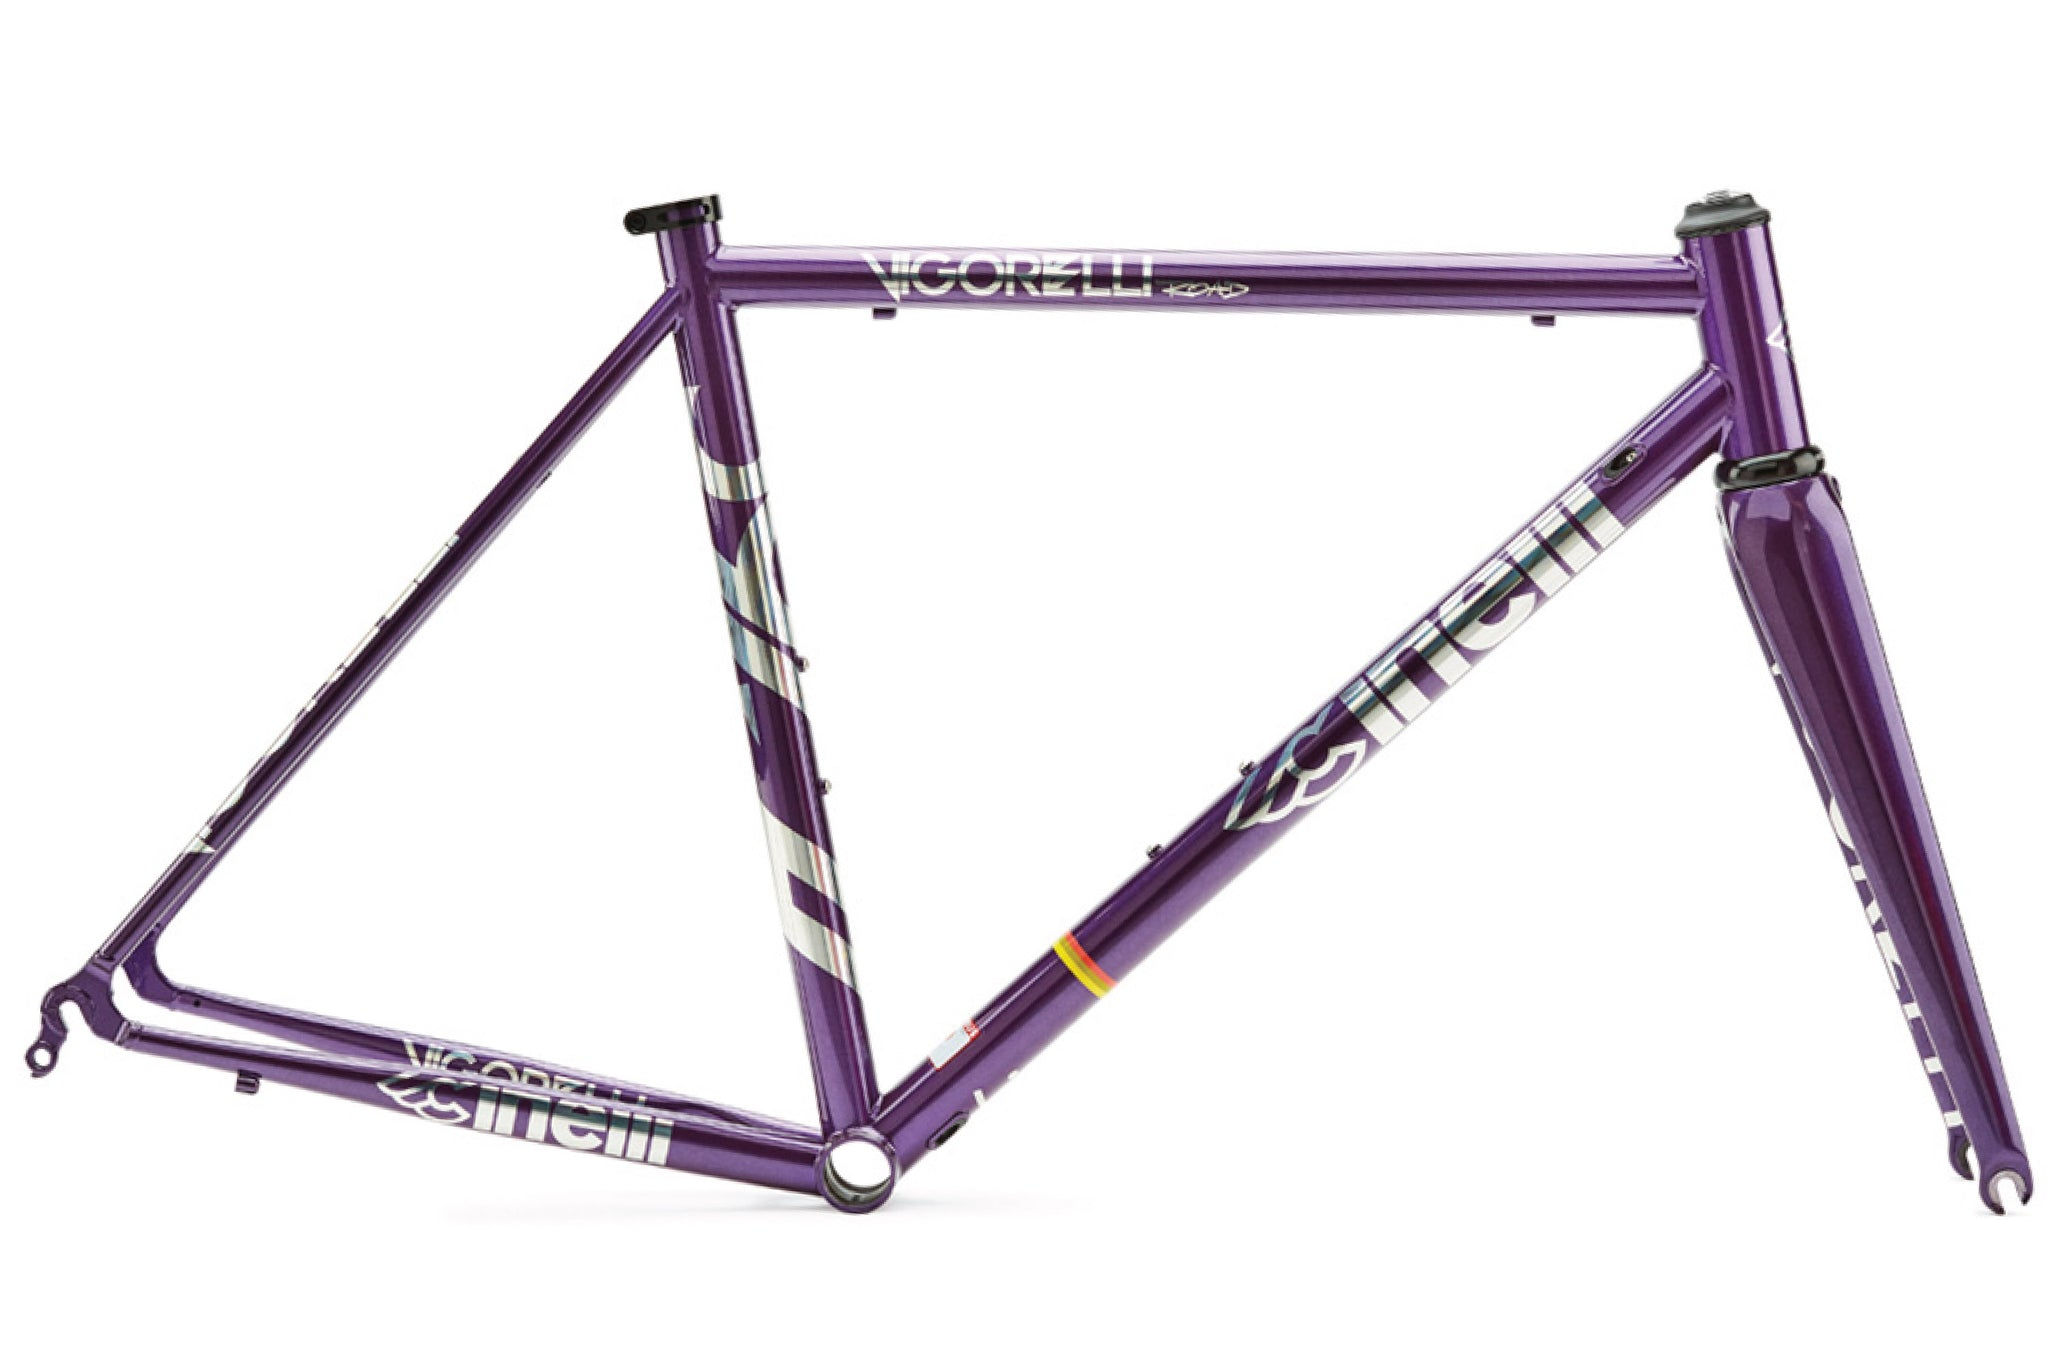 CINELLI VIGORELLI ROAD 2019 FRAMESET - FISHTAIL CYCLERY